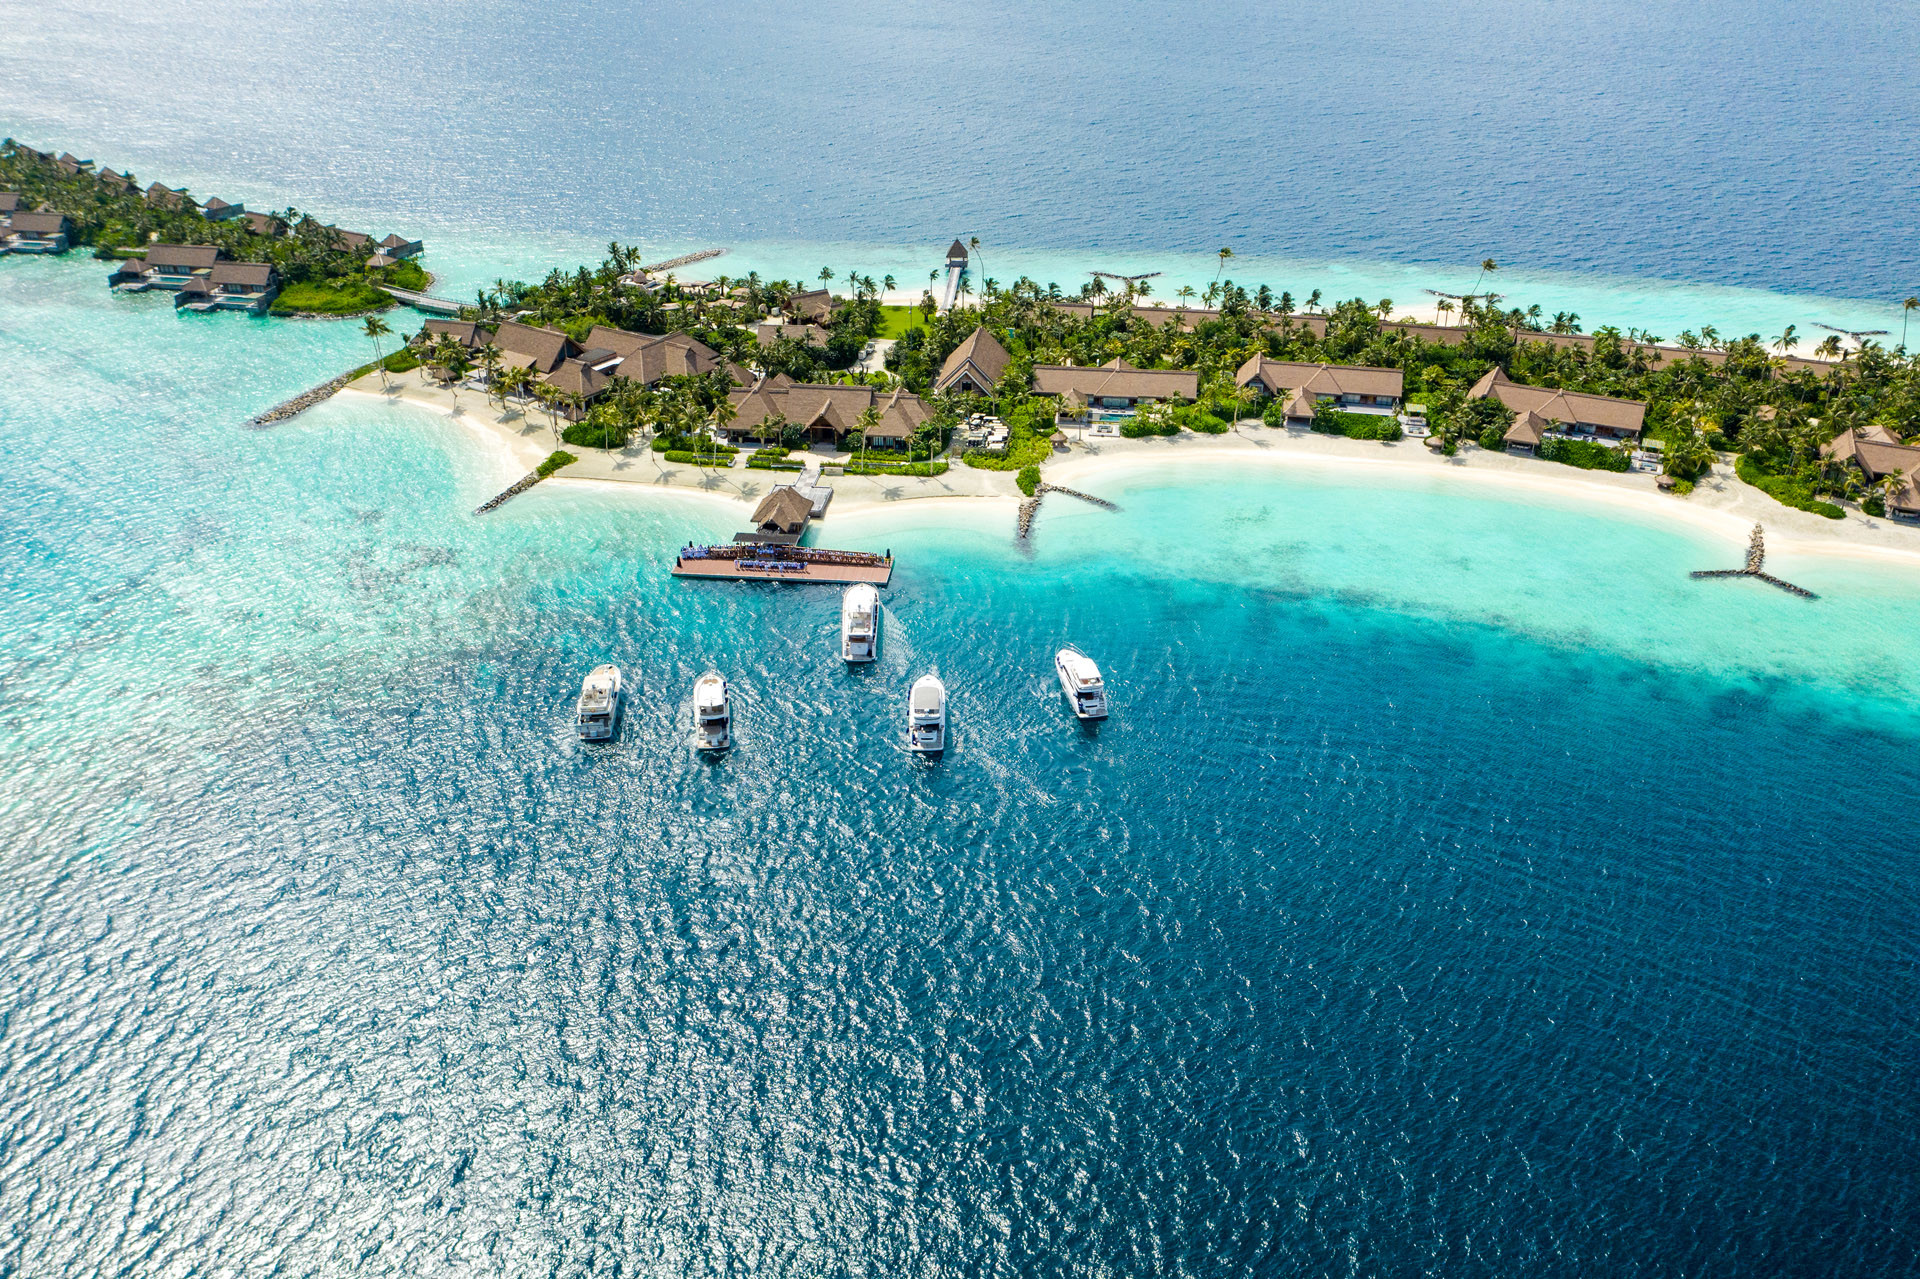 news-main-waldorf-astoria-maldives-ithaafushi-appoints-new-director-of-human-resources.1598265458.jpg